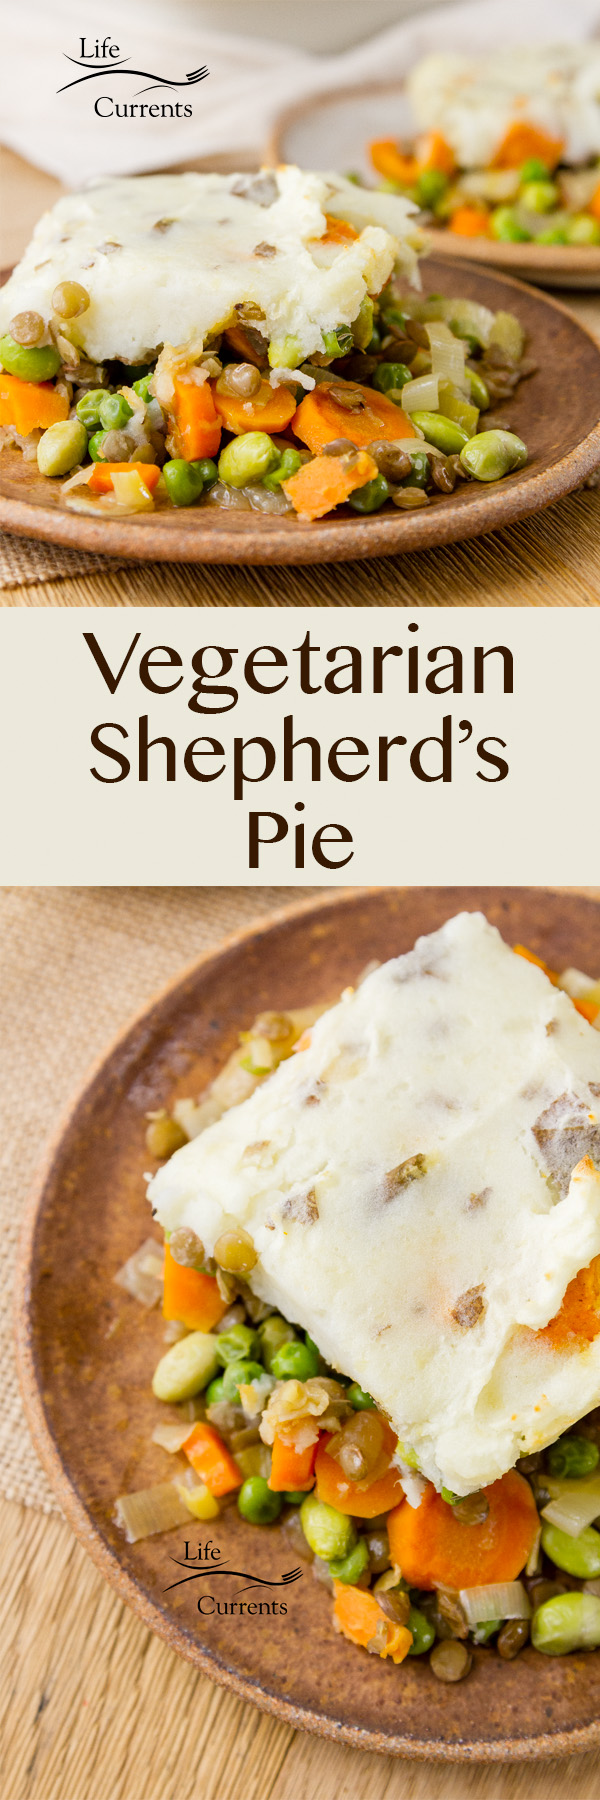 Vegetarian Shepherd's Pie is a great healthy veggie loaded comfort food dish